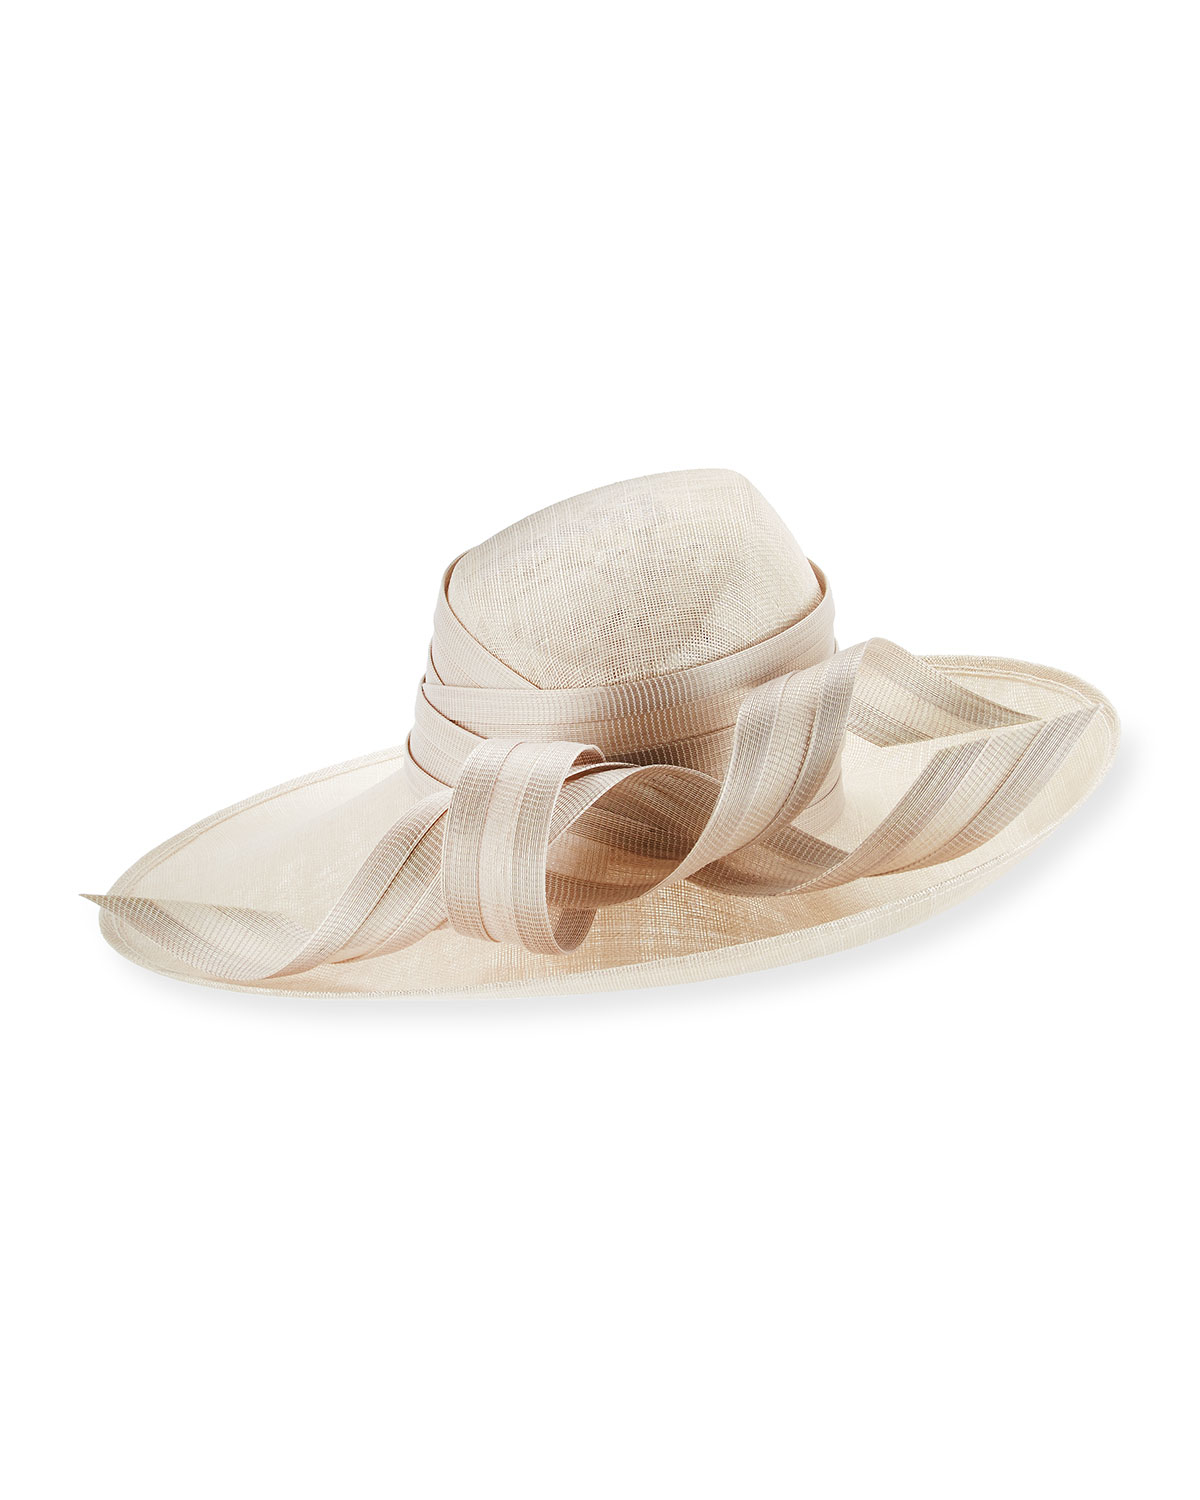 99357944553 Lyst - Philip Treacy Small Straw Oval Hat W  Ribbons in Natural